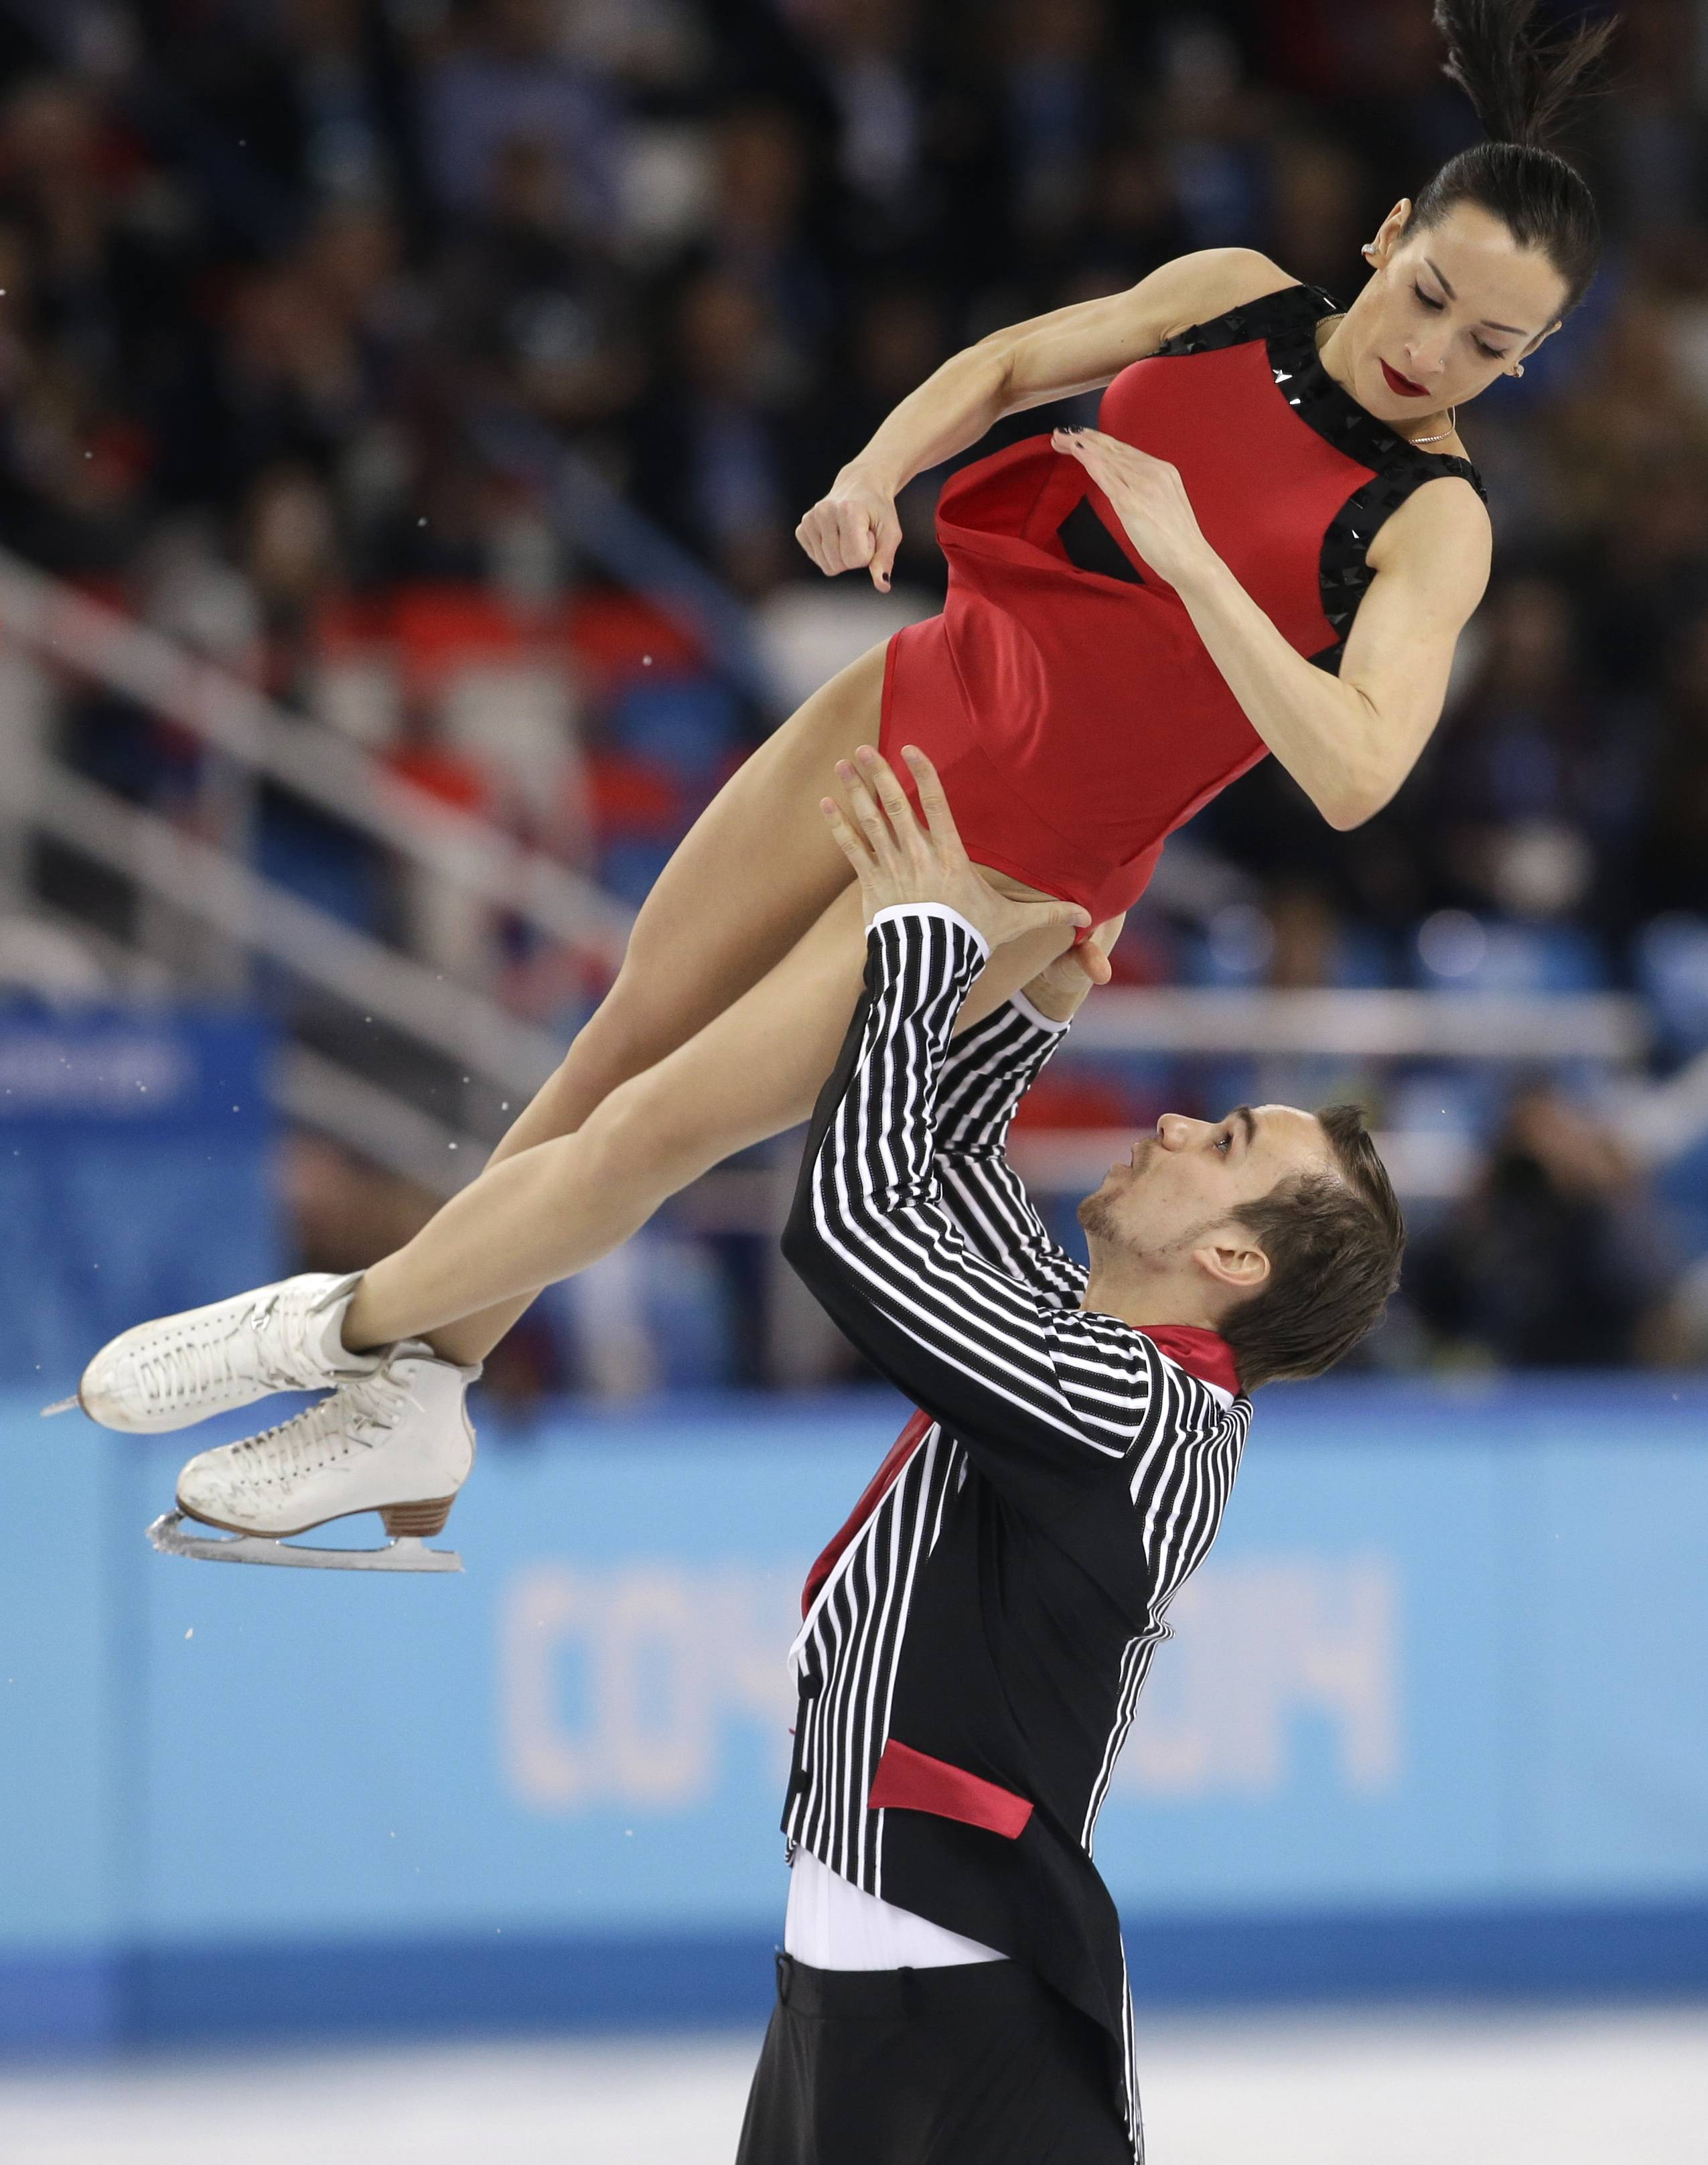 Ksenia Stolbova and Fedor Klimov of Russia compete in the pairs free skate figure skating.